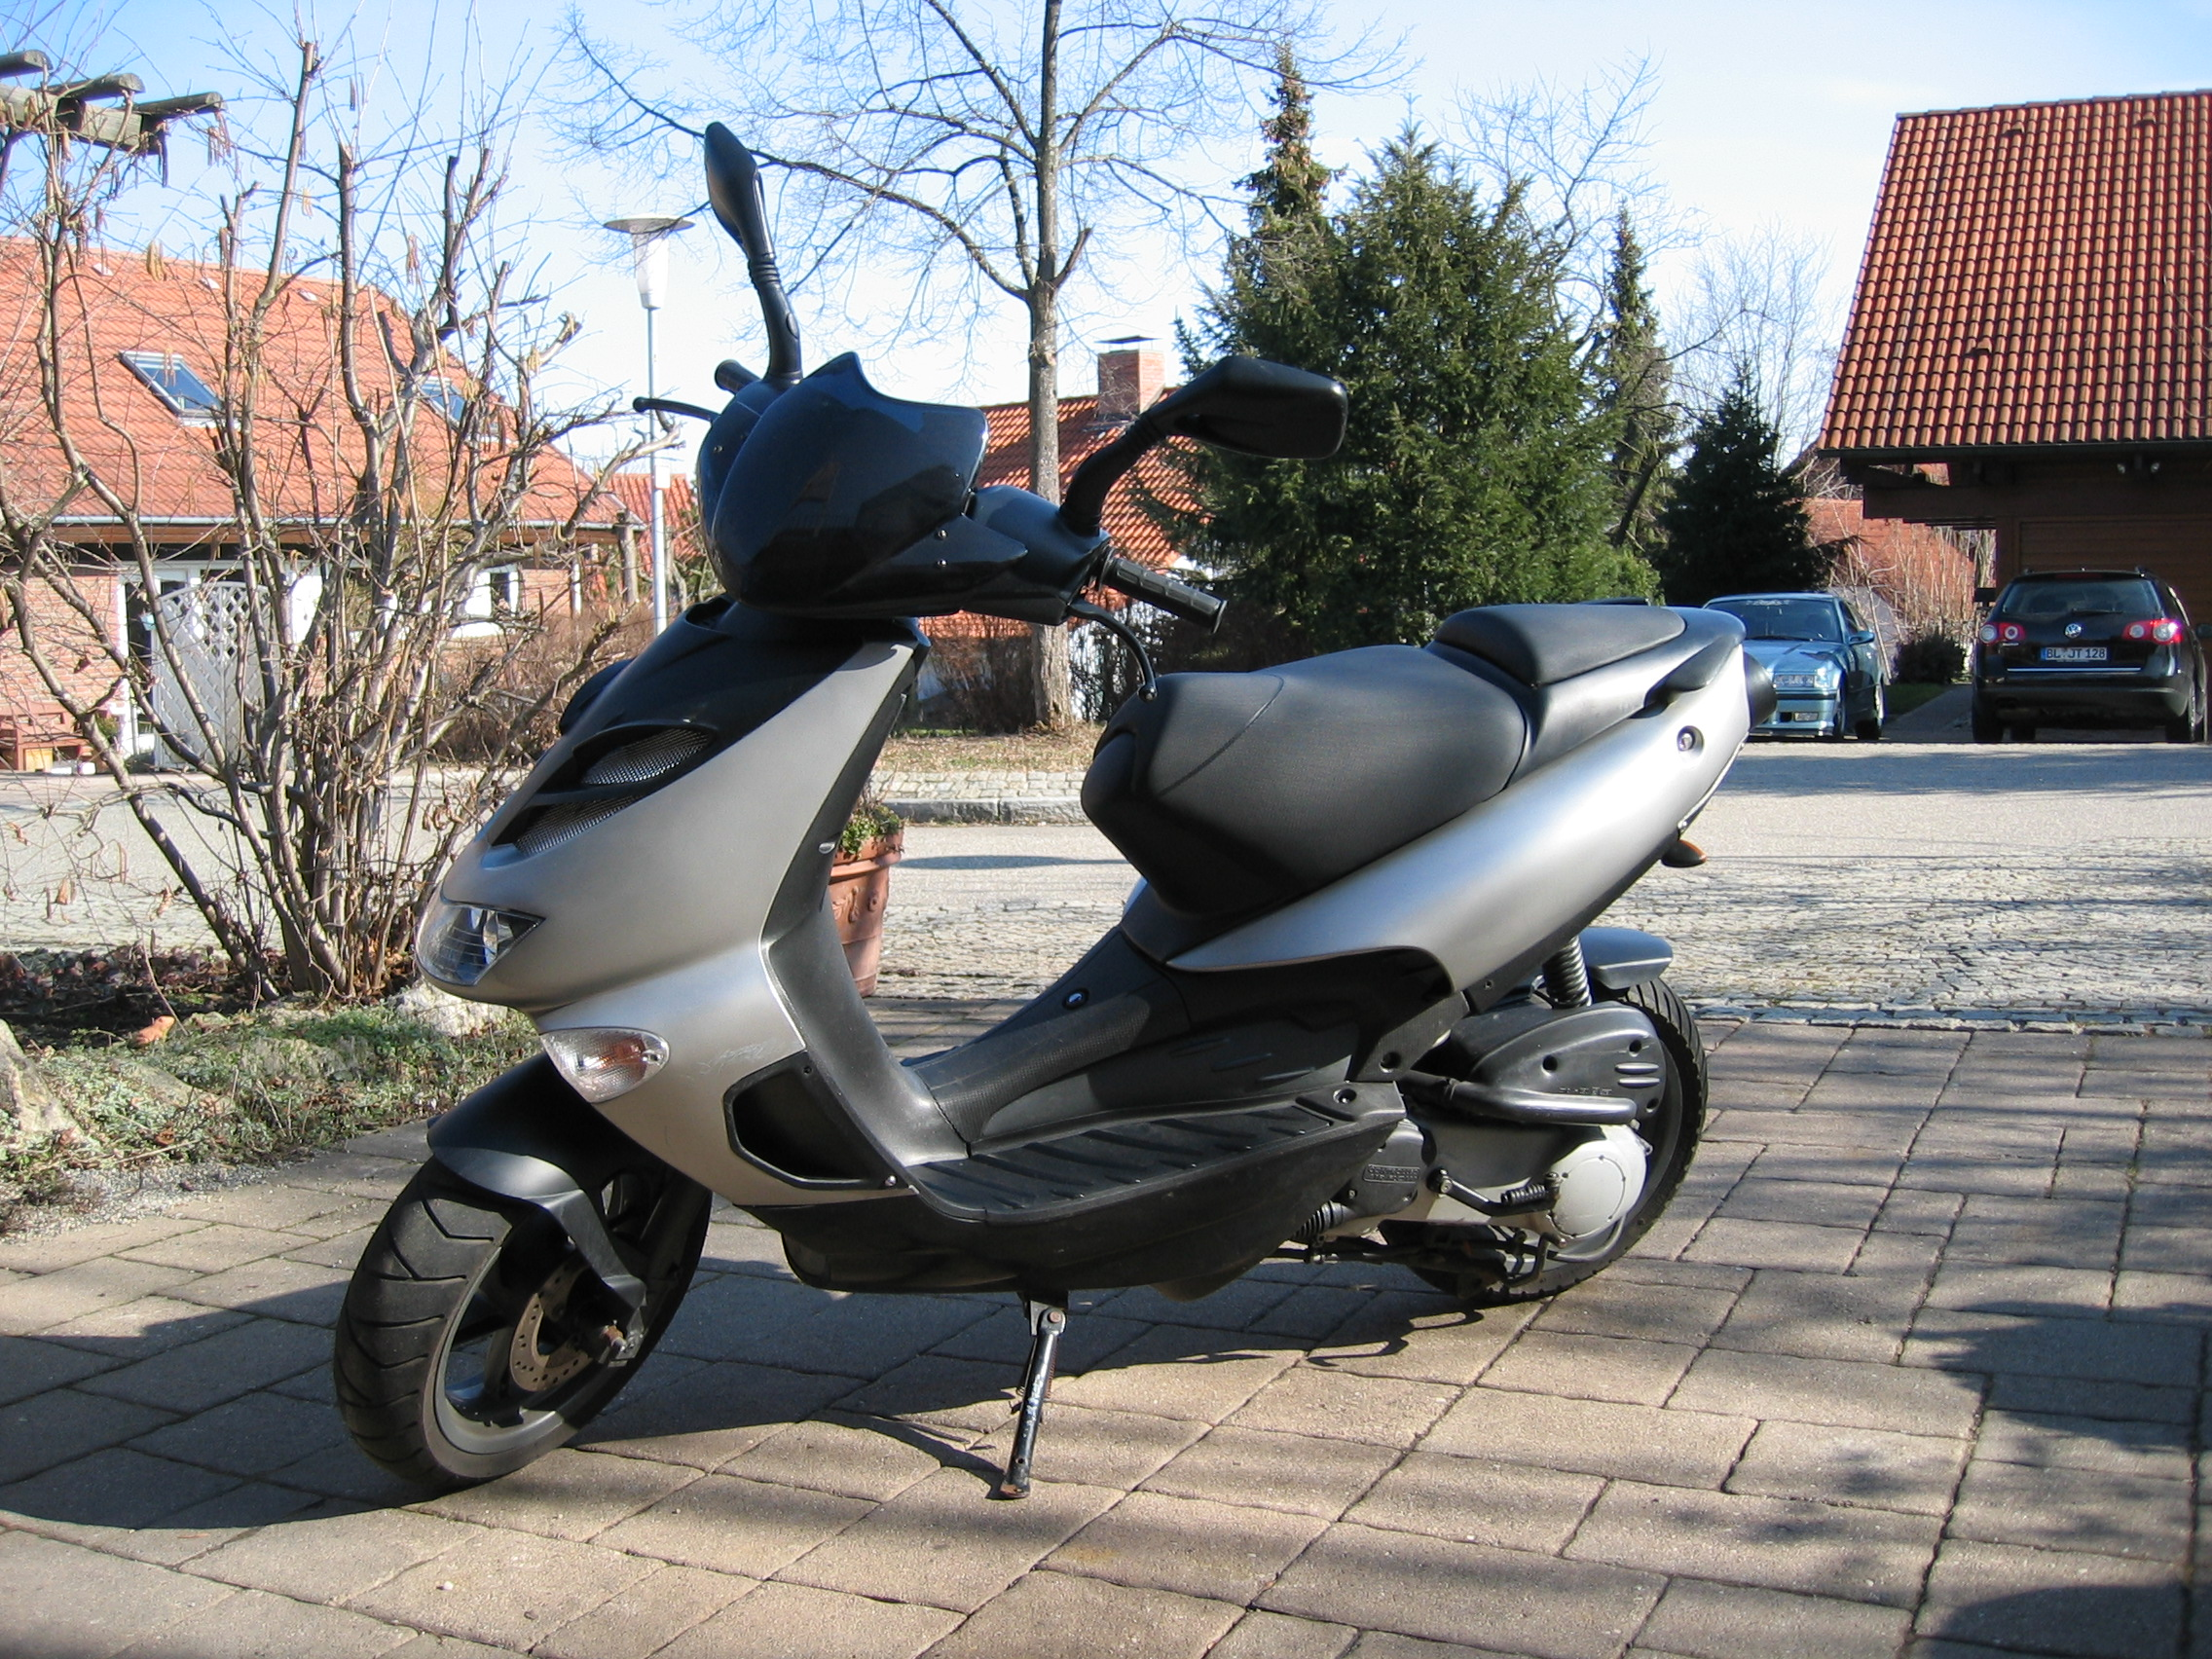 motorroller aprilia sr50 funmaster mit piaggio motor zu. Black Bedroom Furniture Sets. Home Design Ideas